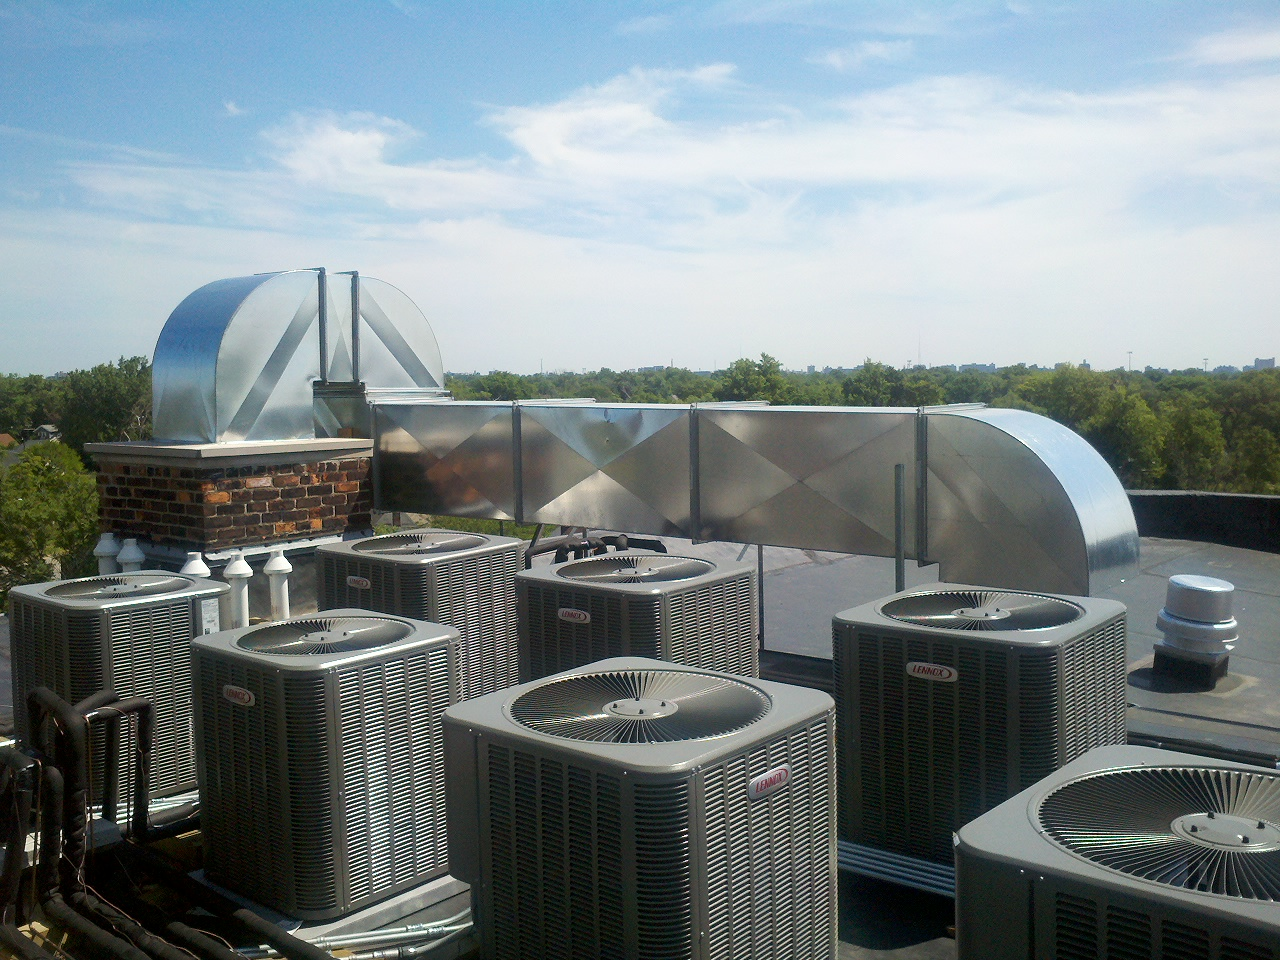 An innovative fresh air intake was designed by utilizing the building's original but presently unused chimney space.